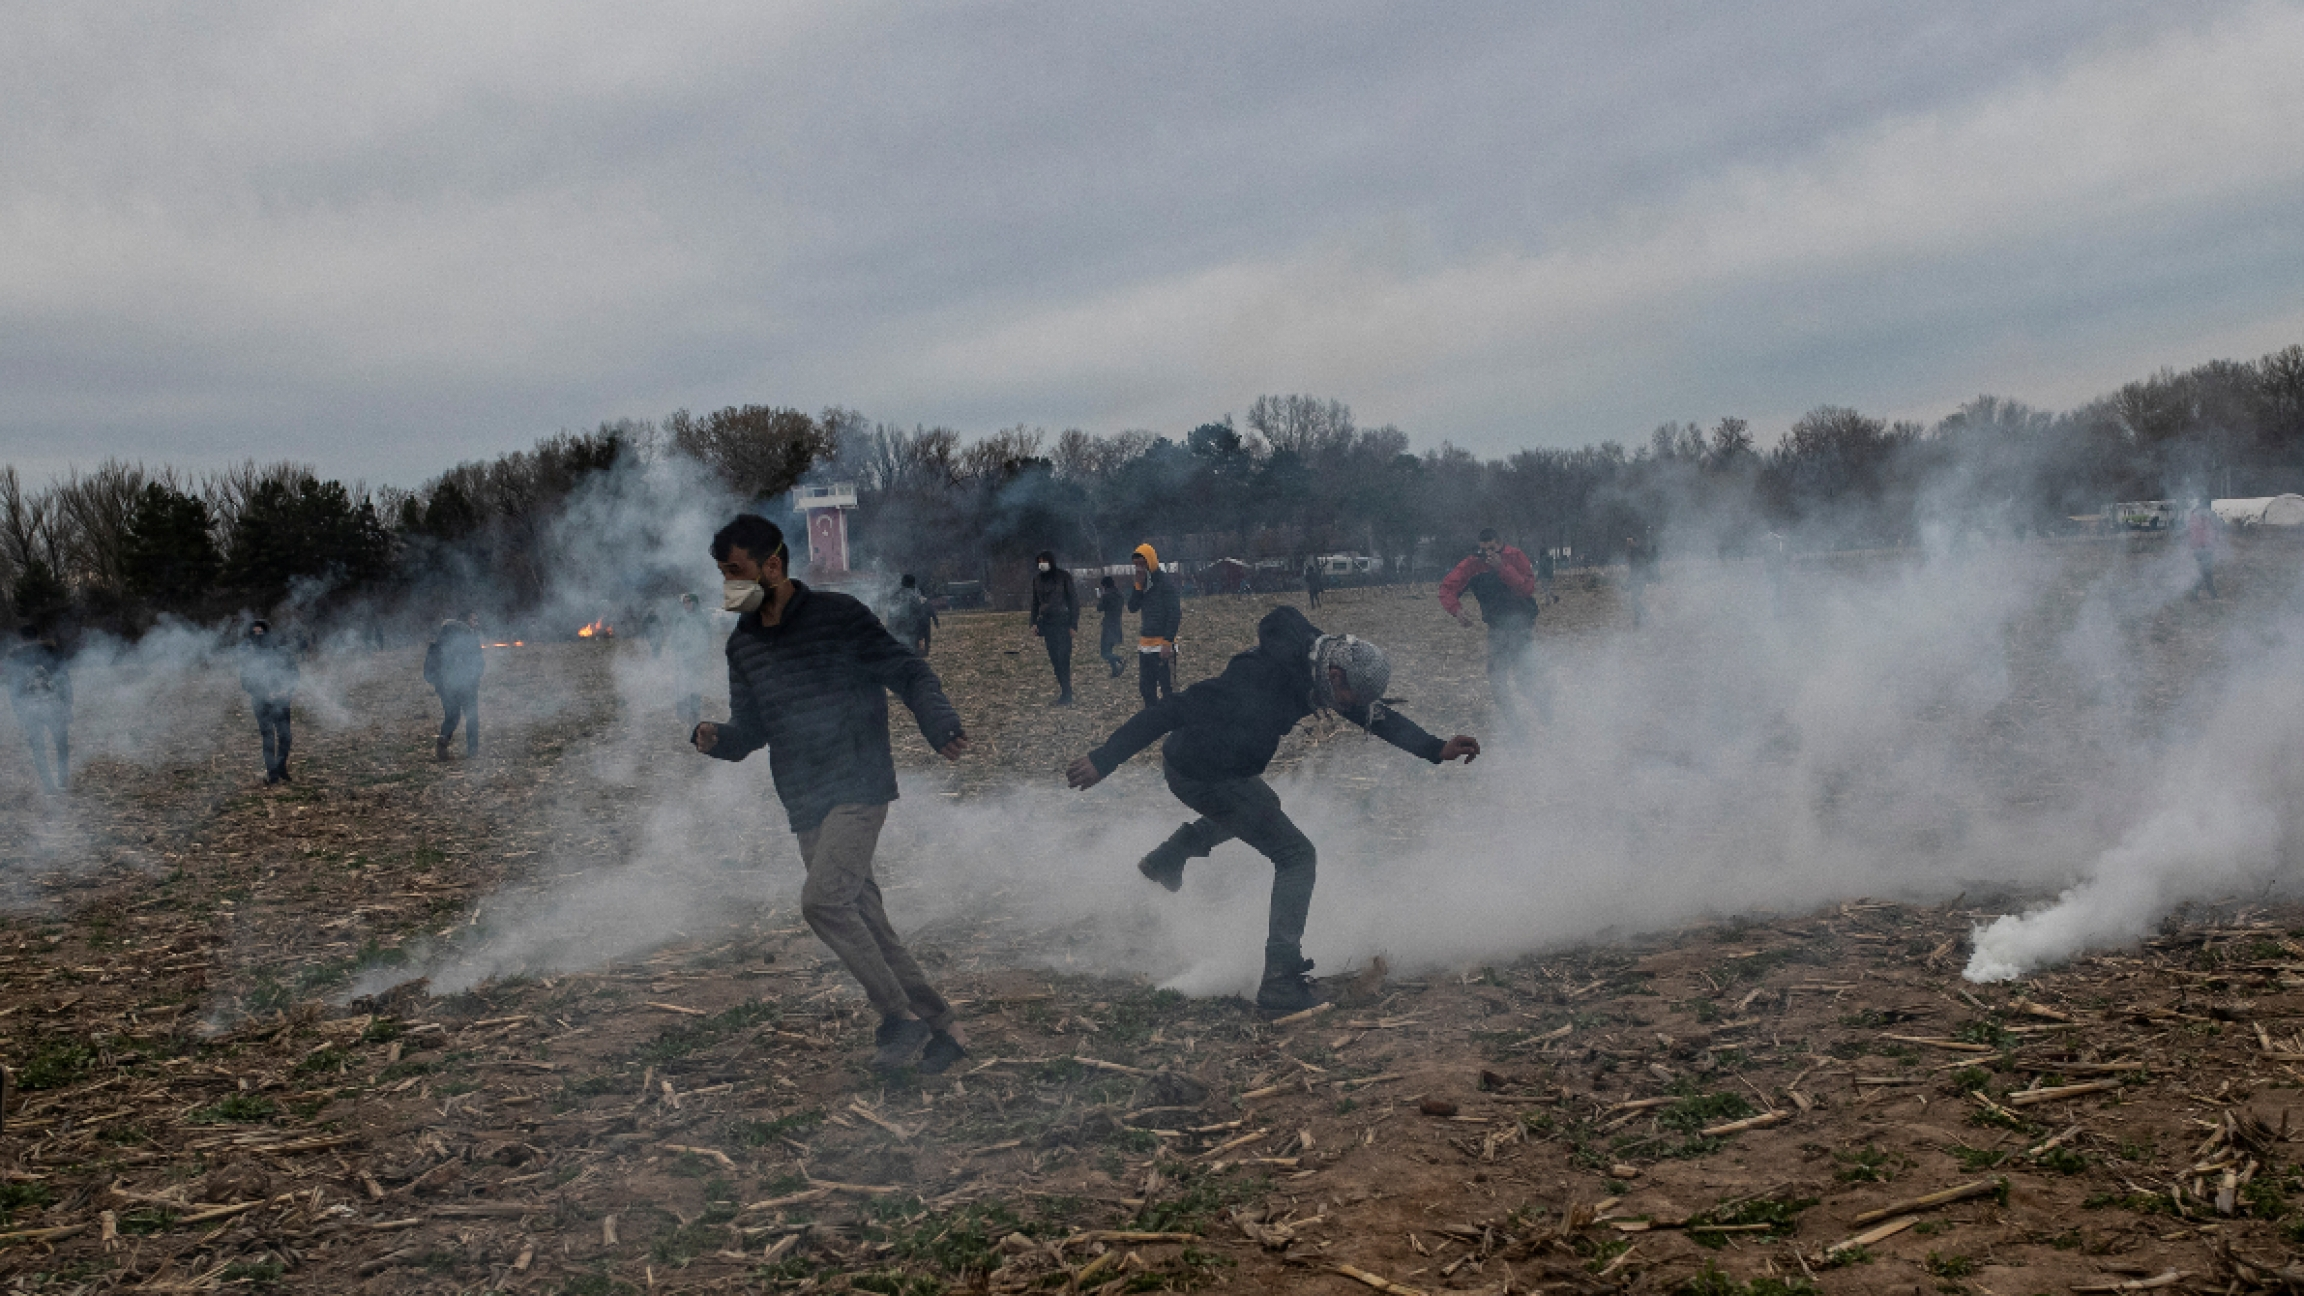 Several men run in a field while teargas is in the air.